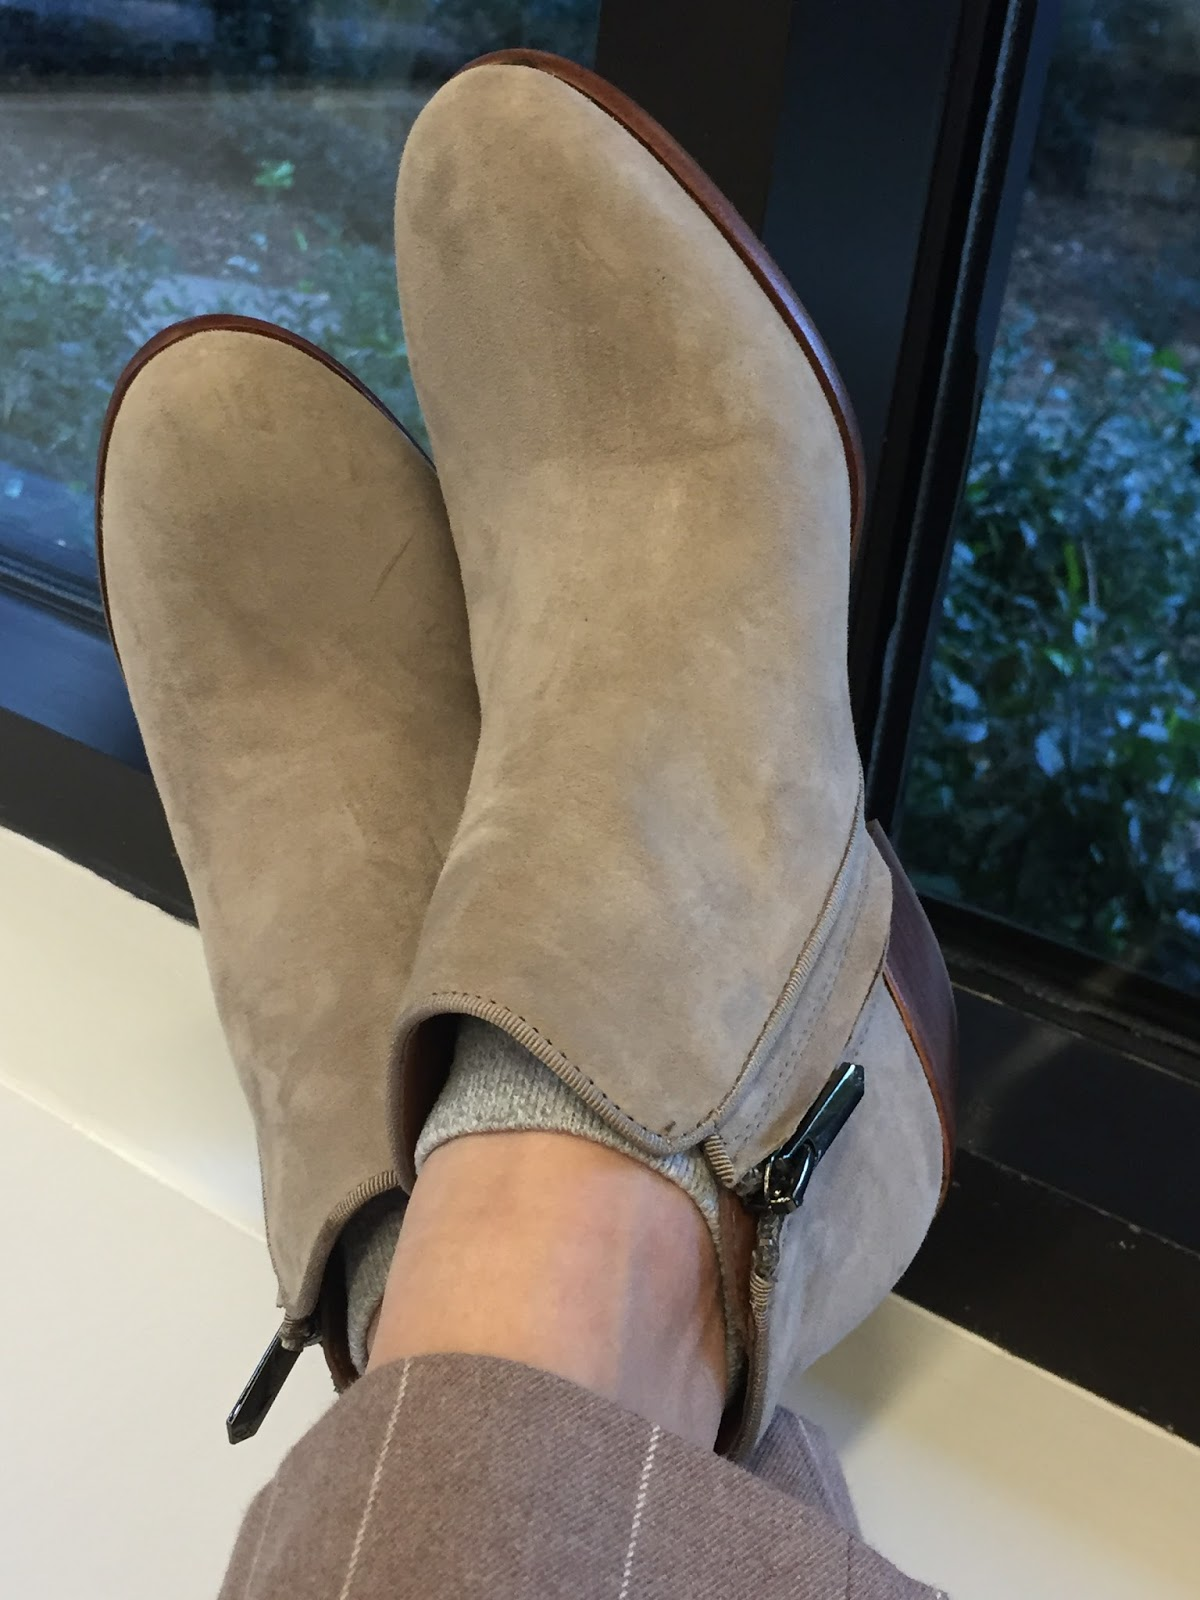 ff3aebbbb975b5 I have found the perfect pair! Drumroll please! Sam Edelman Petty booties.  I love them so much I bought them in two colors in putty suede and slate  gray.